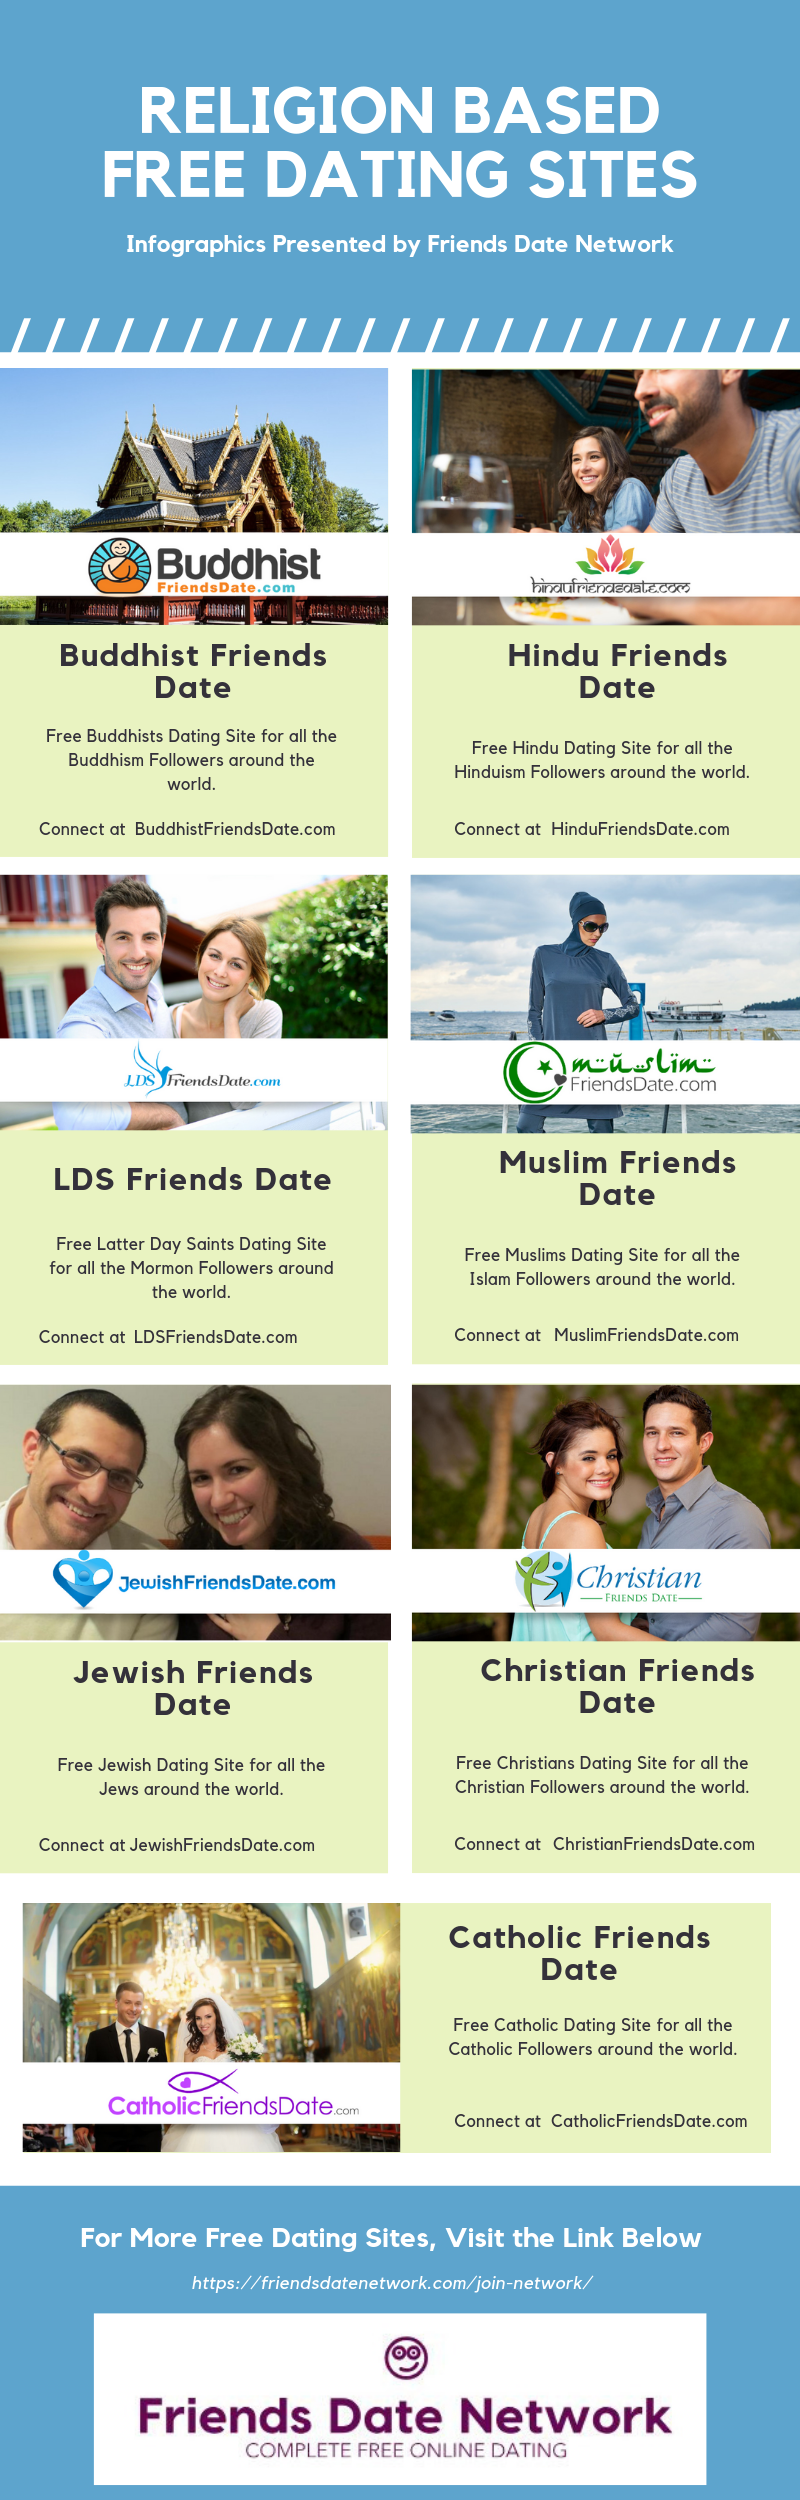 Religion Based Free Dating Sites - Infographics